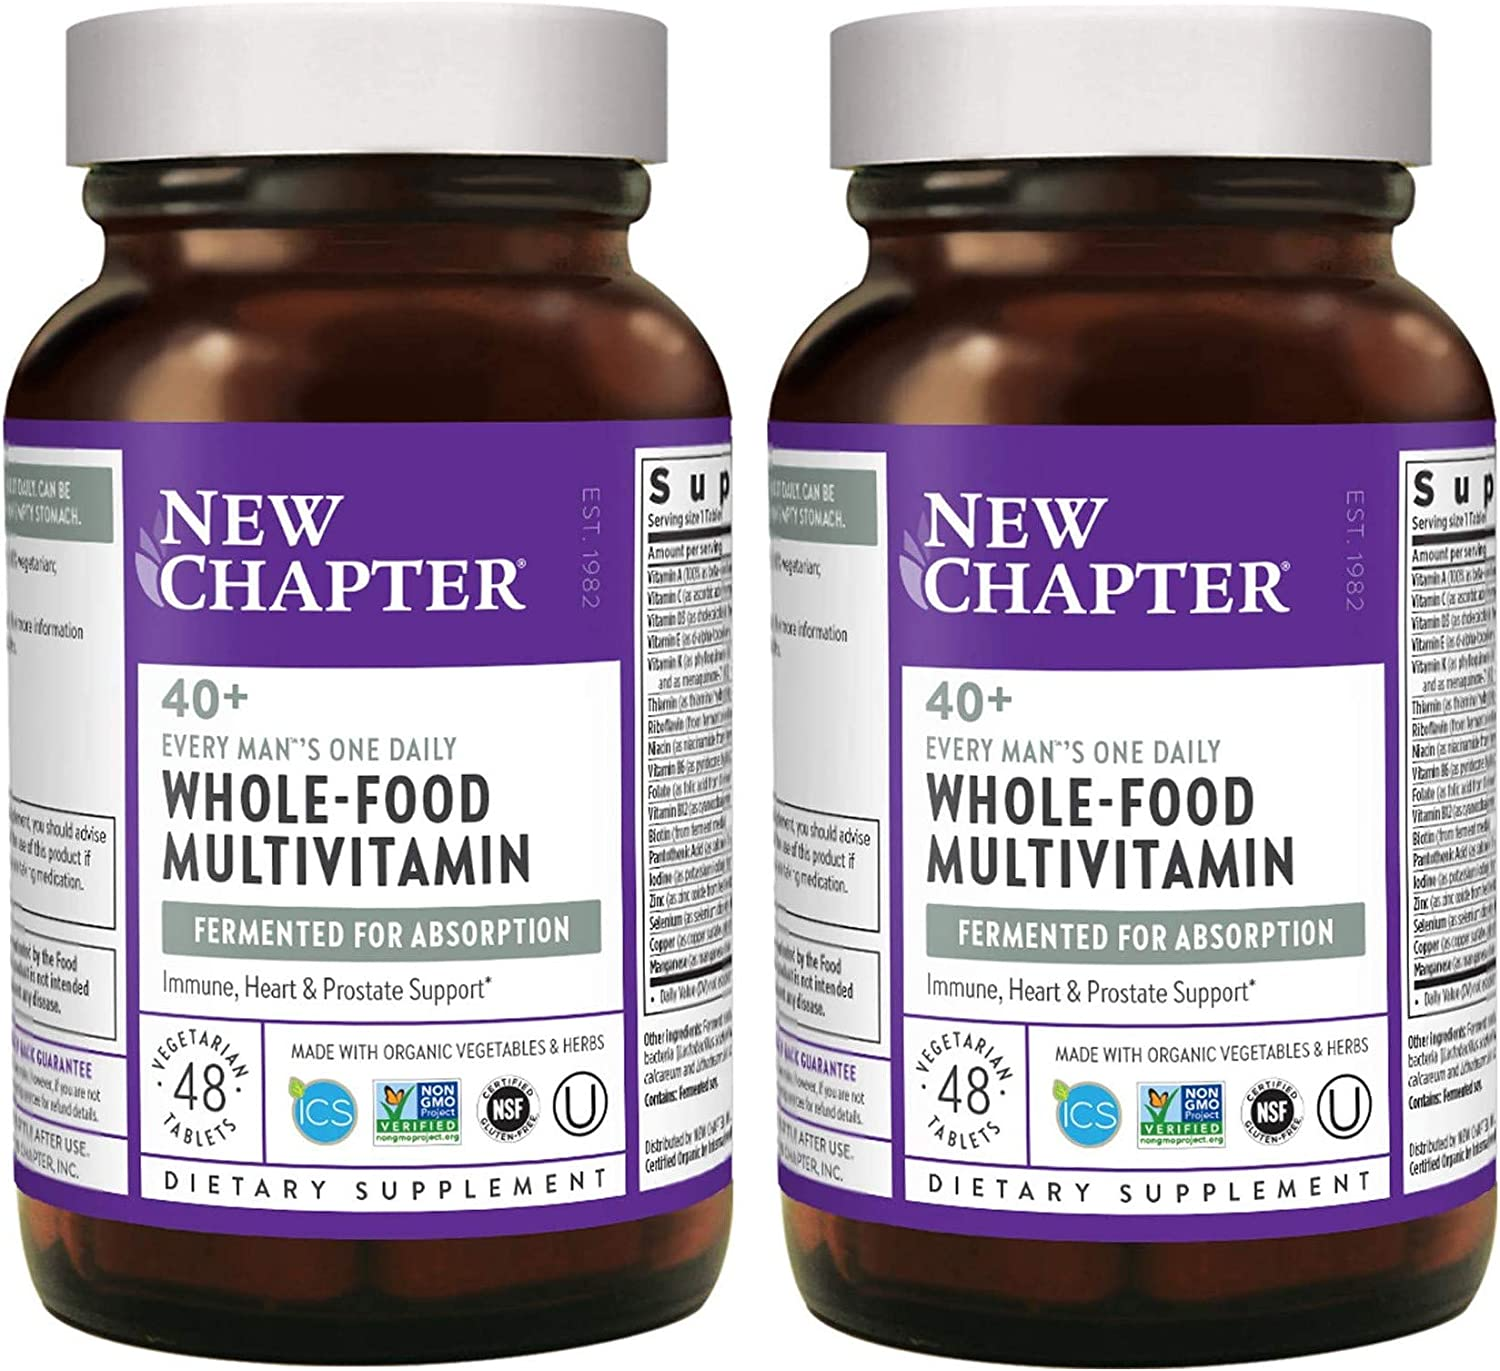 New Chapter 40+ Every Man's One Daily Multi Whole-Food, Fermented, Multivitamin from Organic Vegetables, Herbs with Nutrients for Prostate, Heart and Vision Support (48 Vegetarian Tablets) Pack of 2